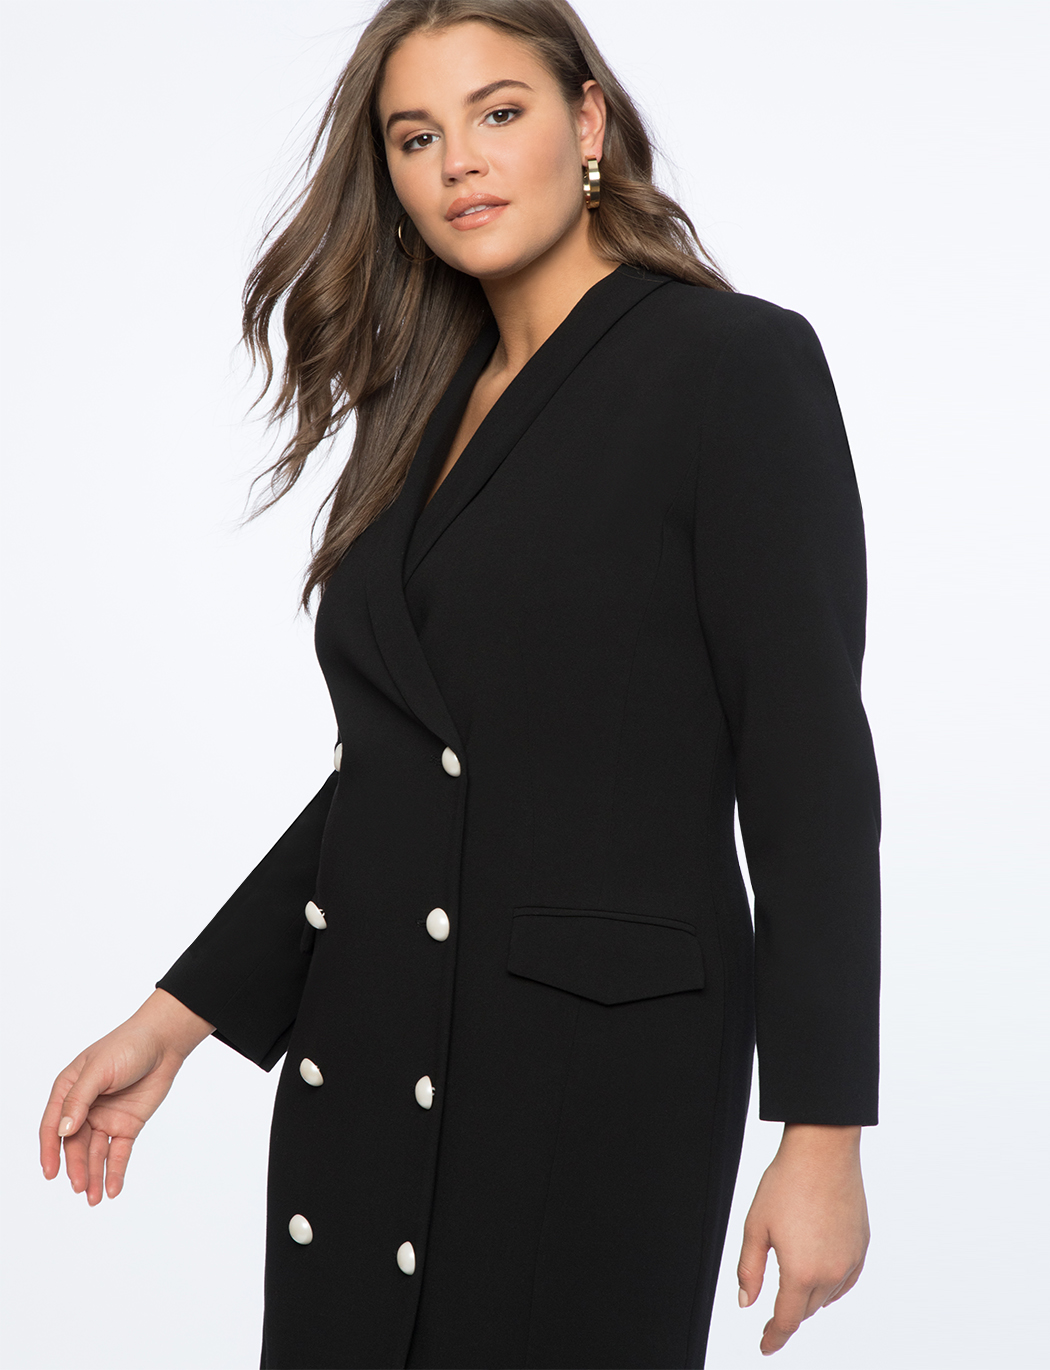 Pearl Button Blazer Dress